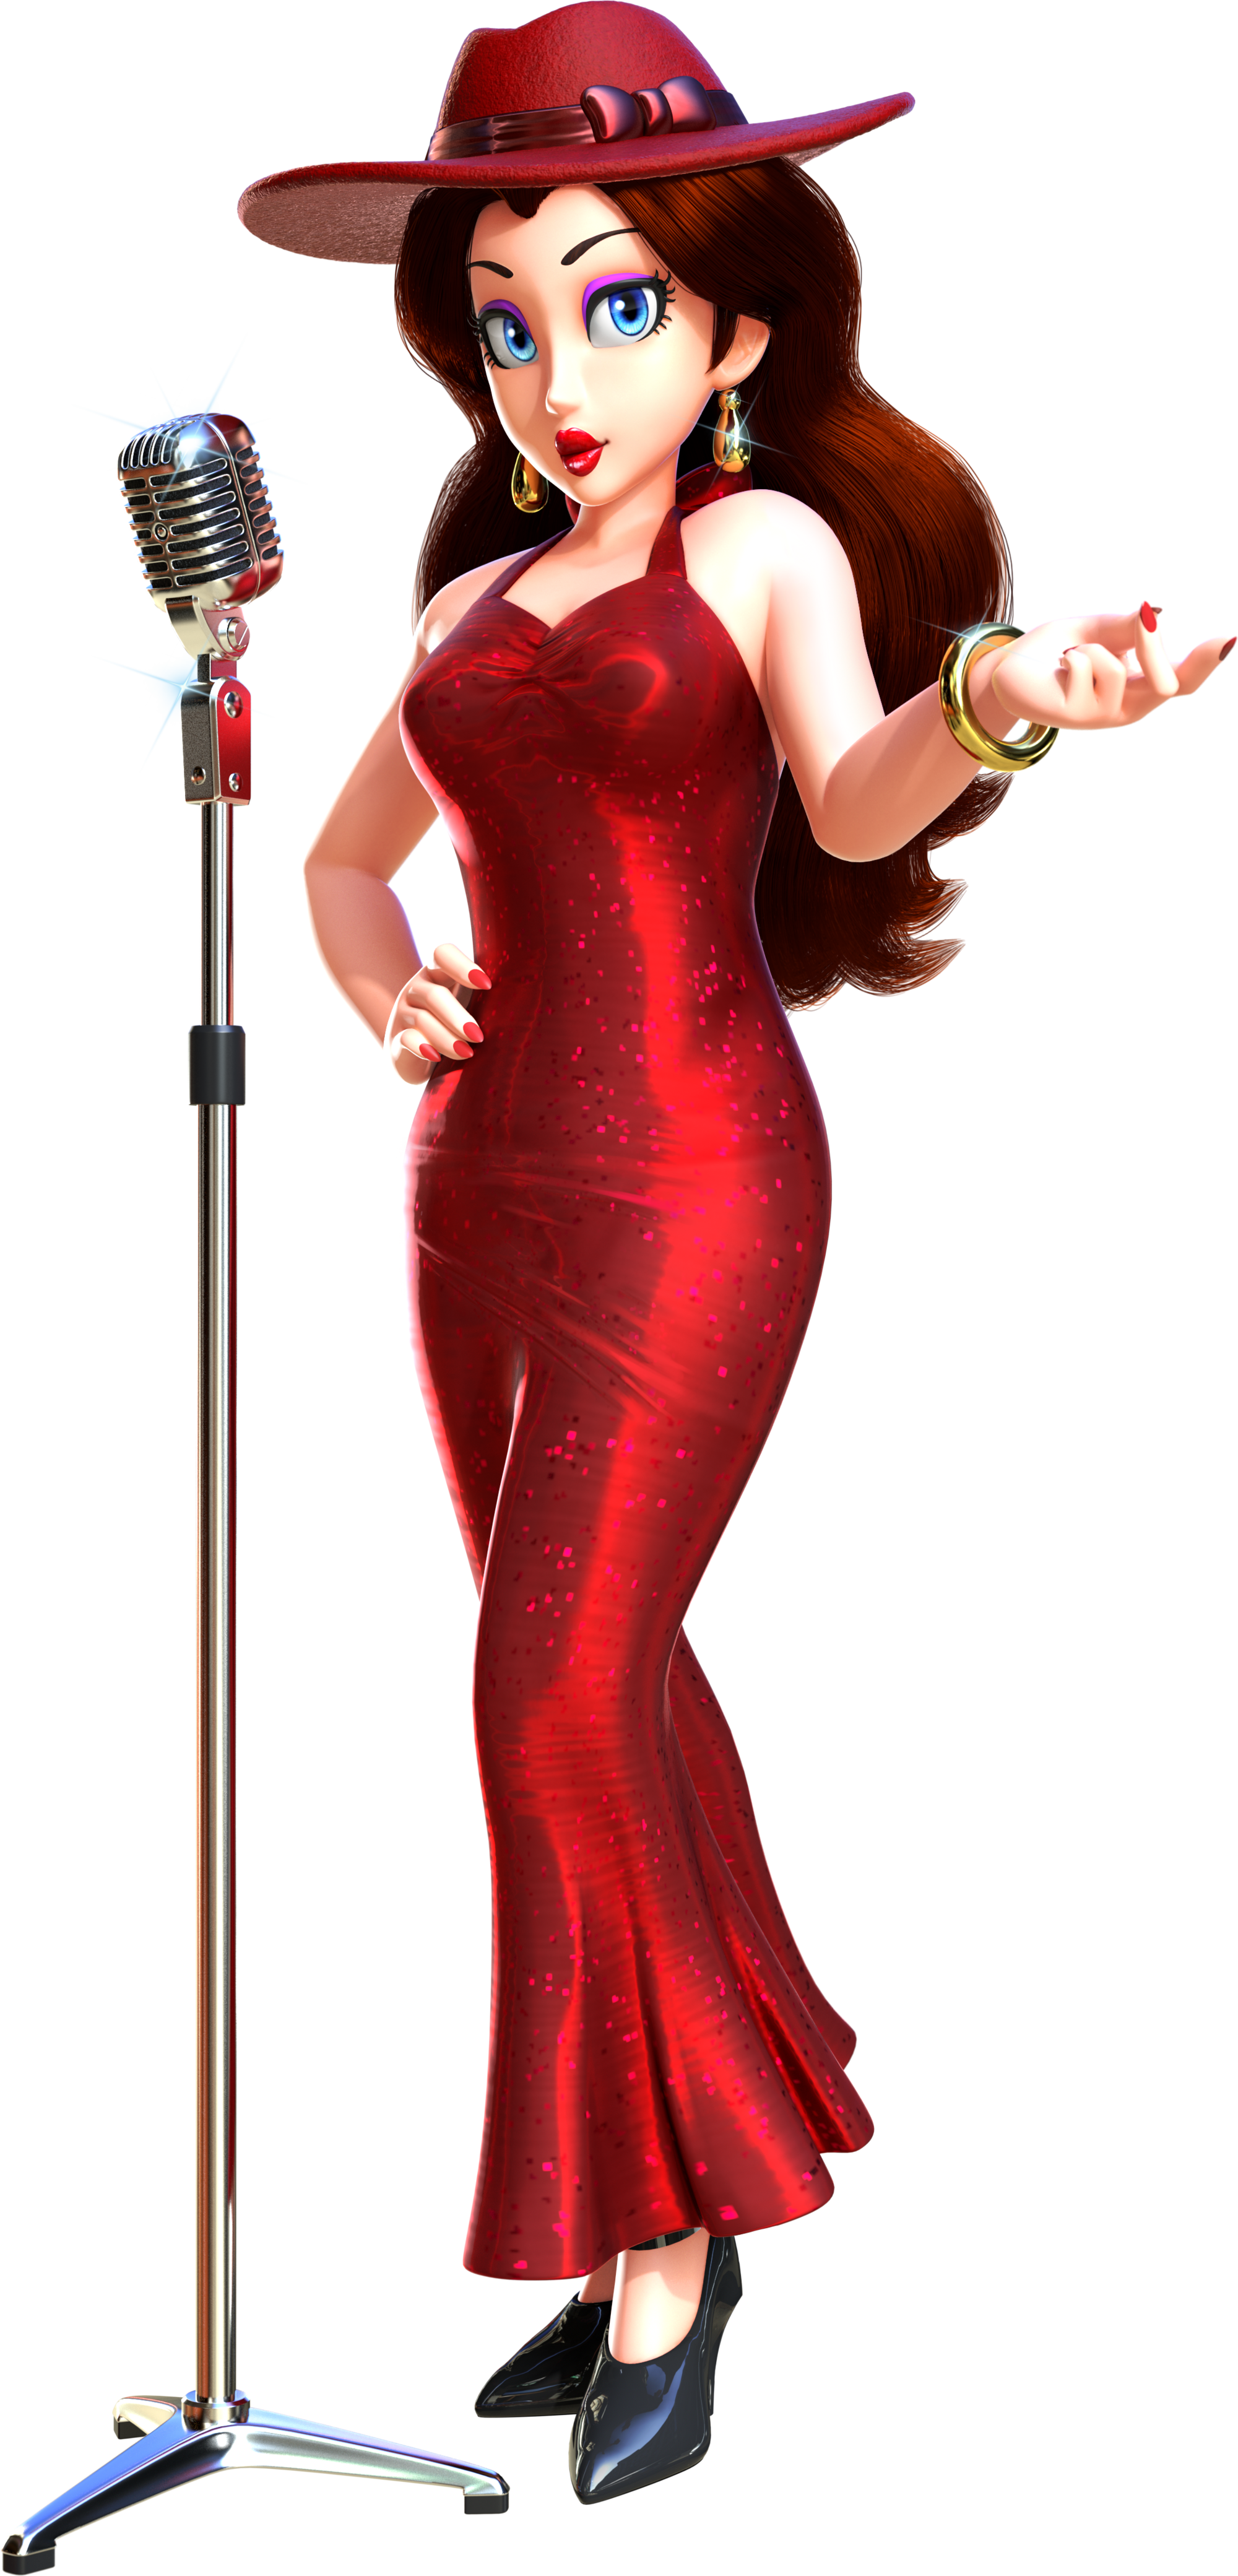 Pauline | MarioWiki | FANDOM powered by Wikia